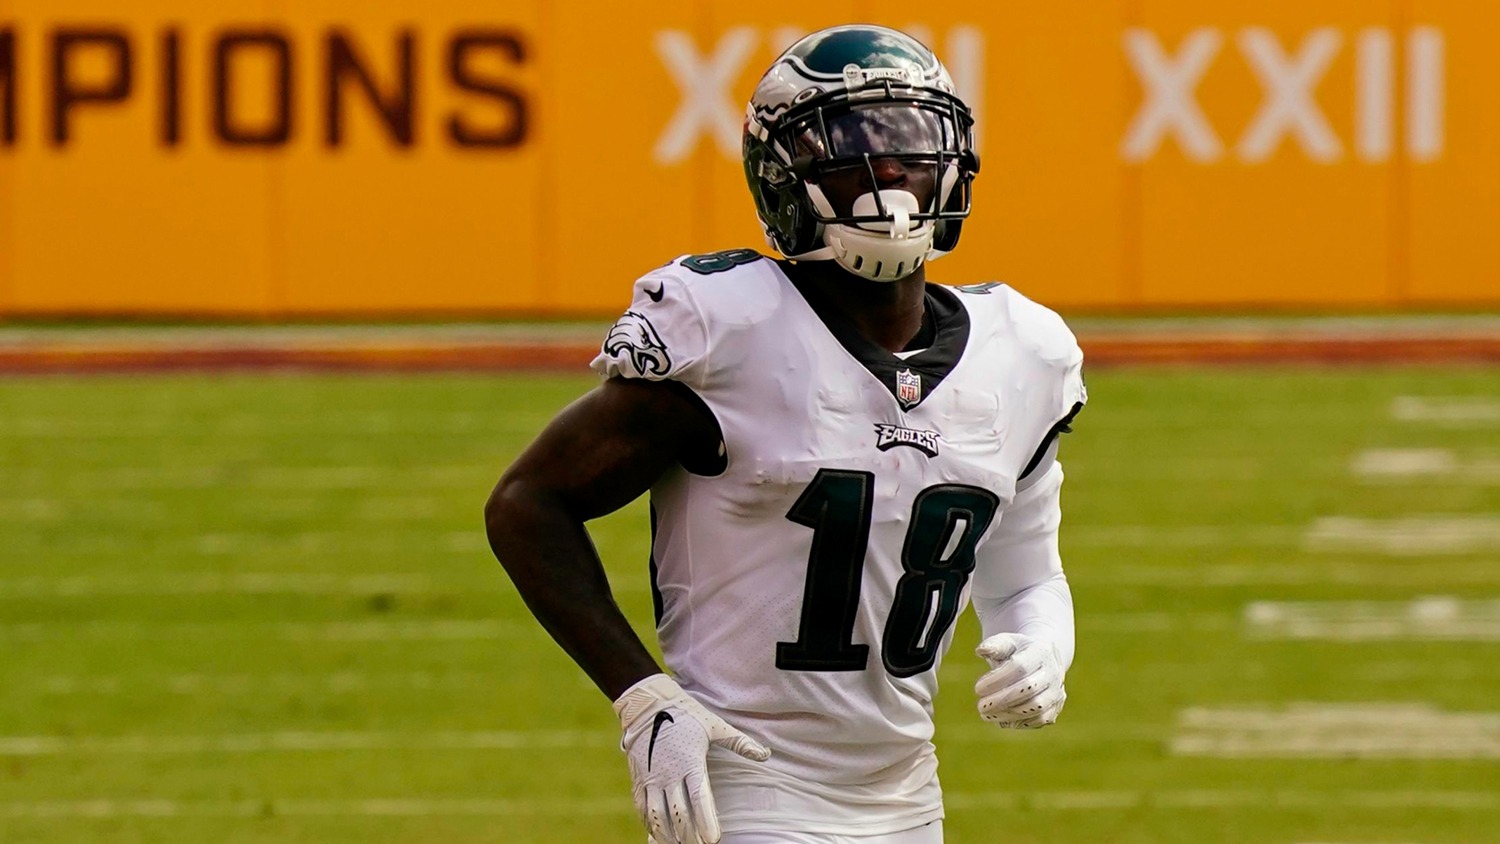 Eagles getting several key players back at practice this week